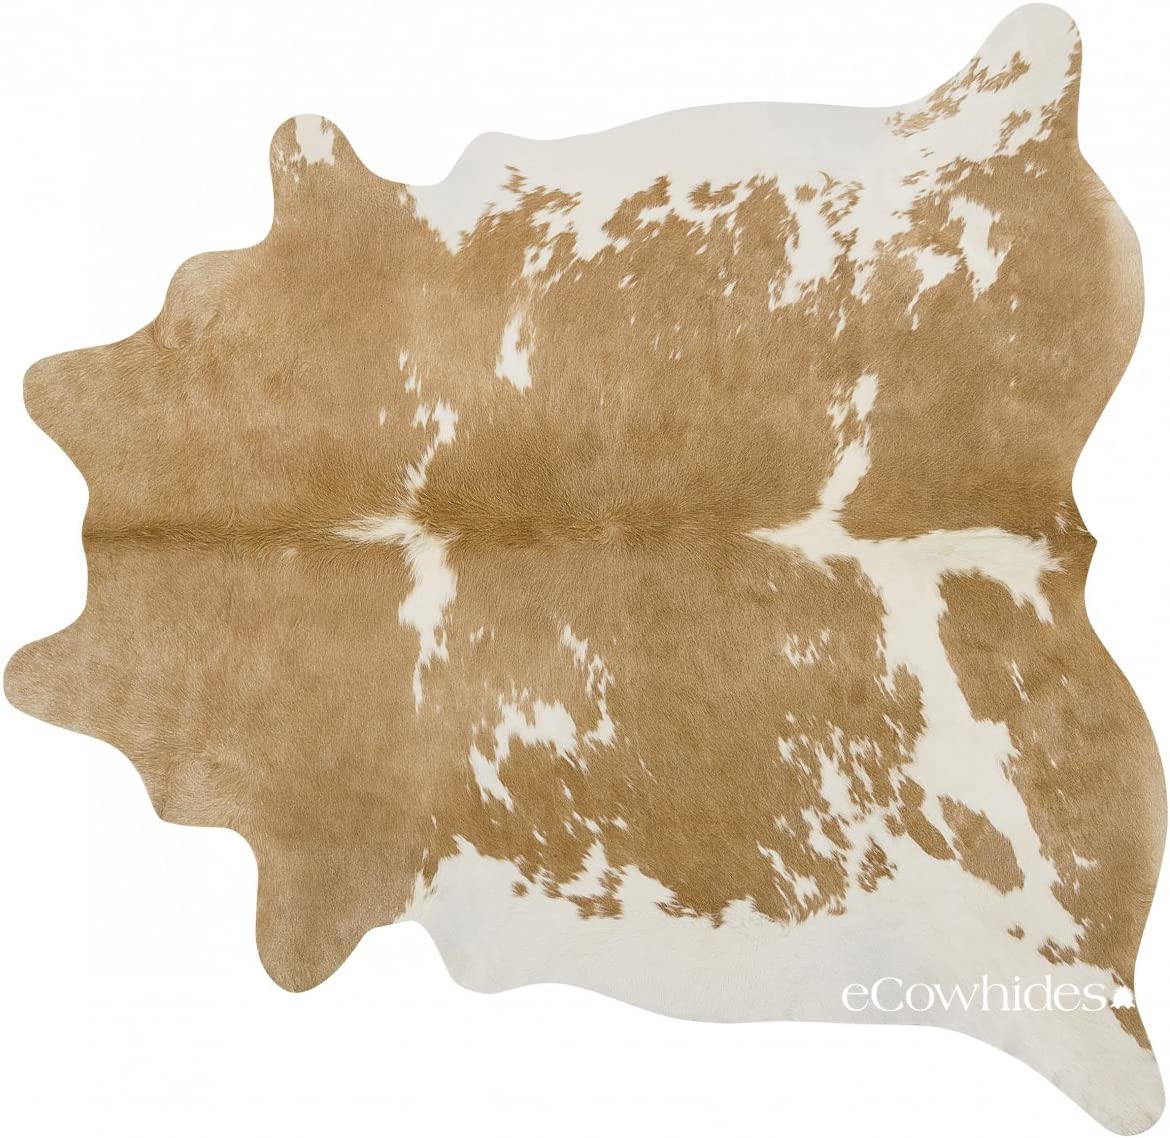 ecowhides Palomino and White Brazilian Cowhide Area Rug, Cowskin Leather Hide for Home Living Room XL 7 x 6 ft